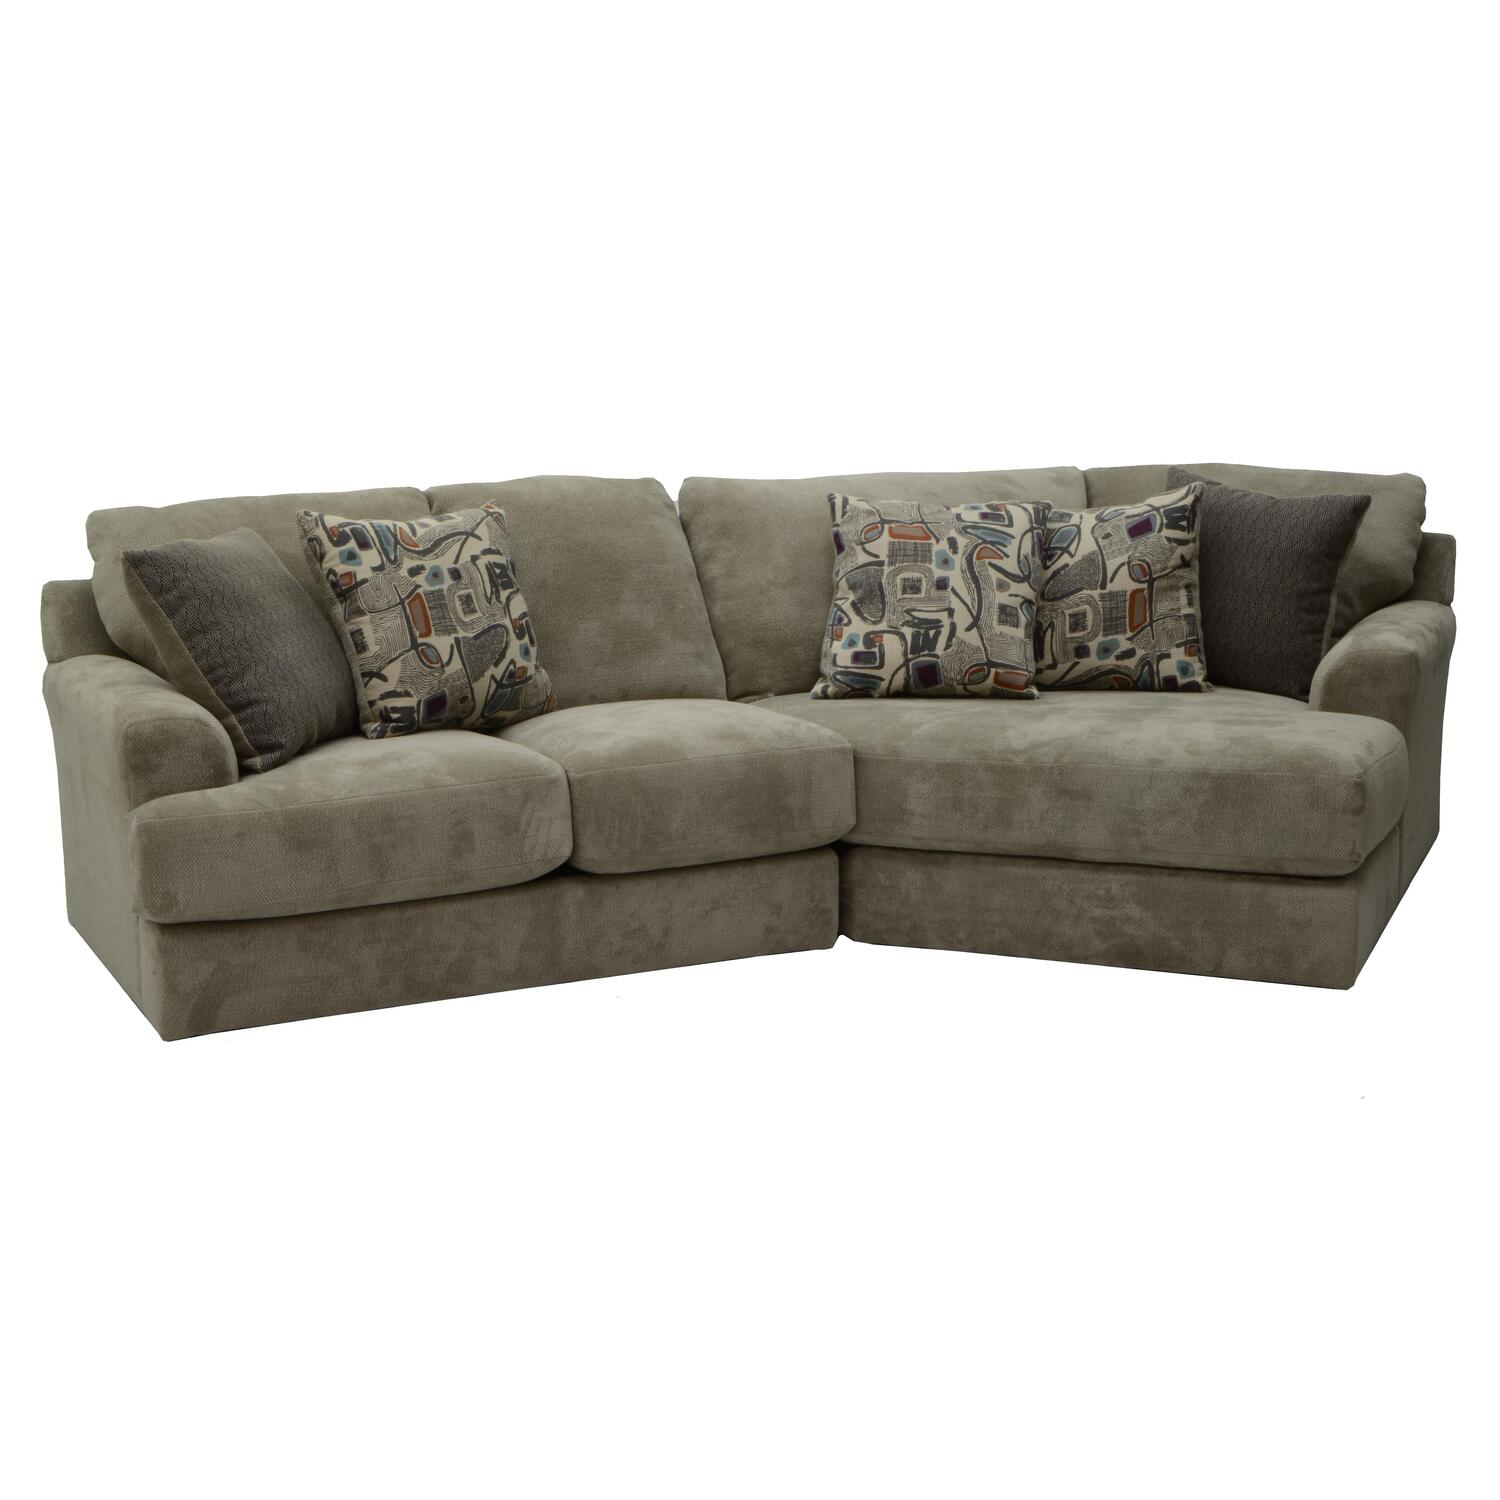 sectional sofa corner wedge ashley furniture brown reclining upholstered sofas love seats and chairs harden